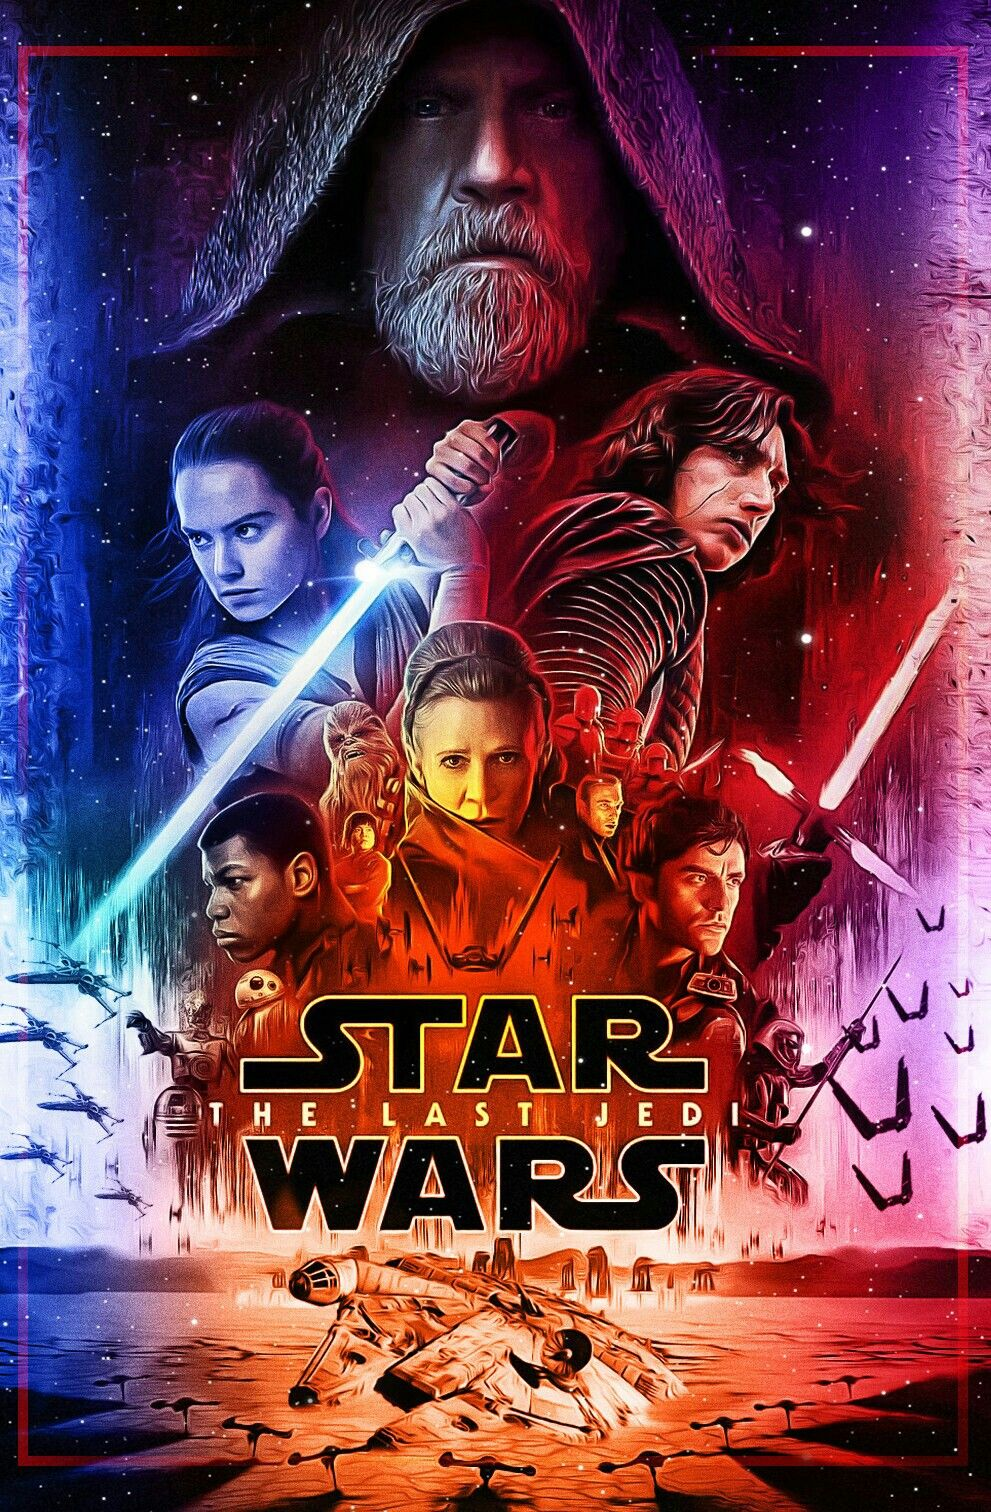 The Last Jedi Star Wars Pictures Funny Star Wars Memes Star Wars Movies Posters